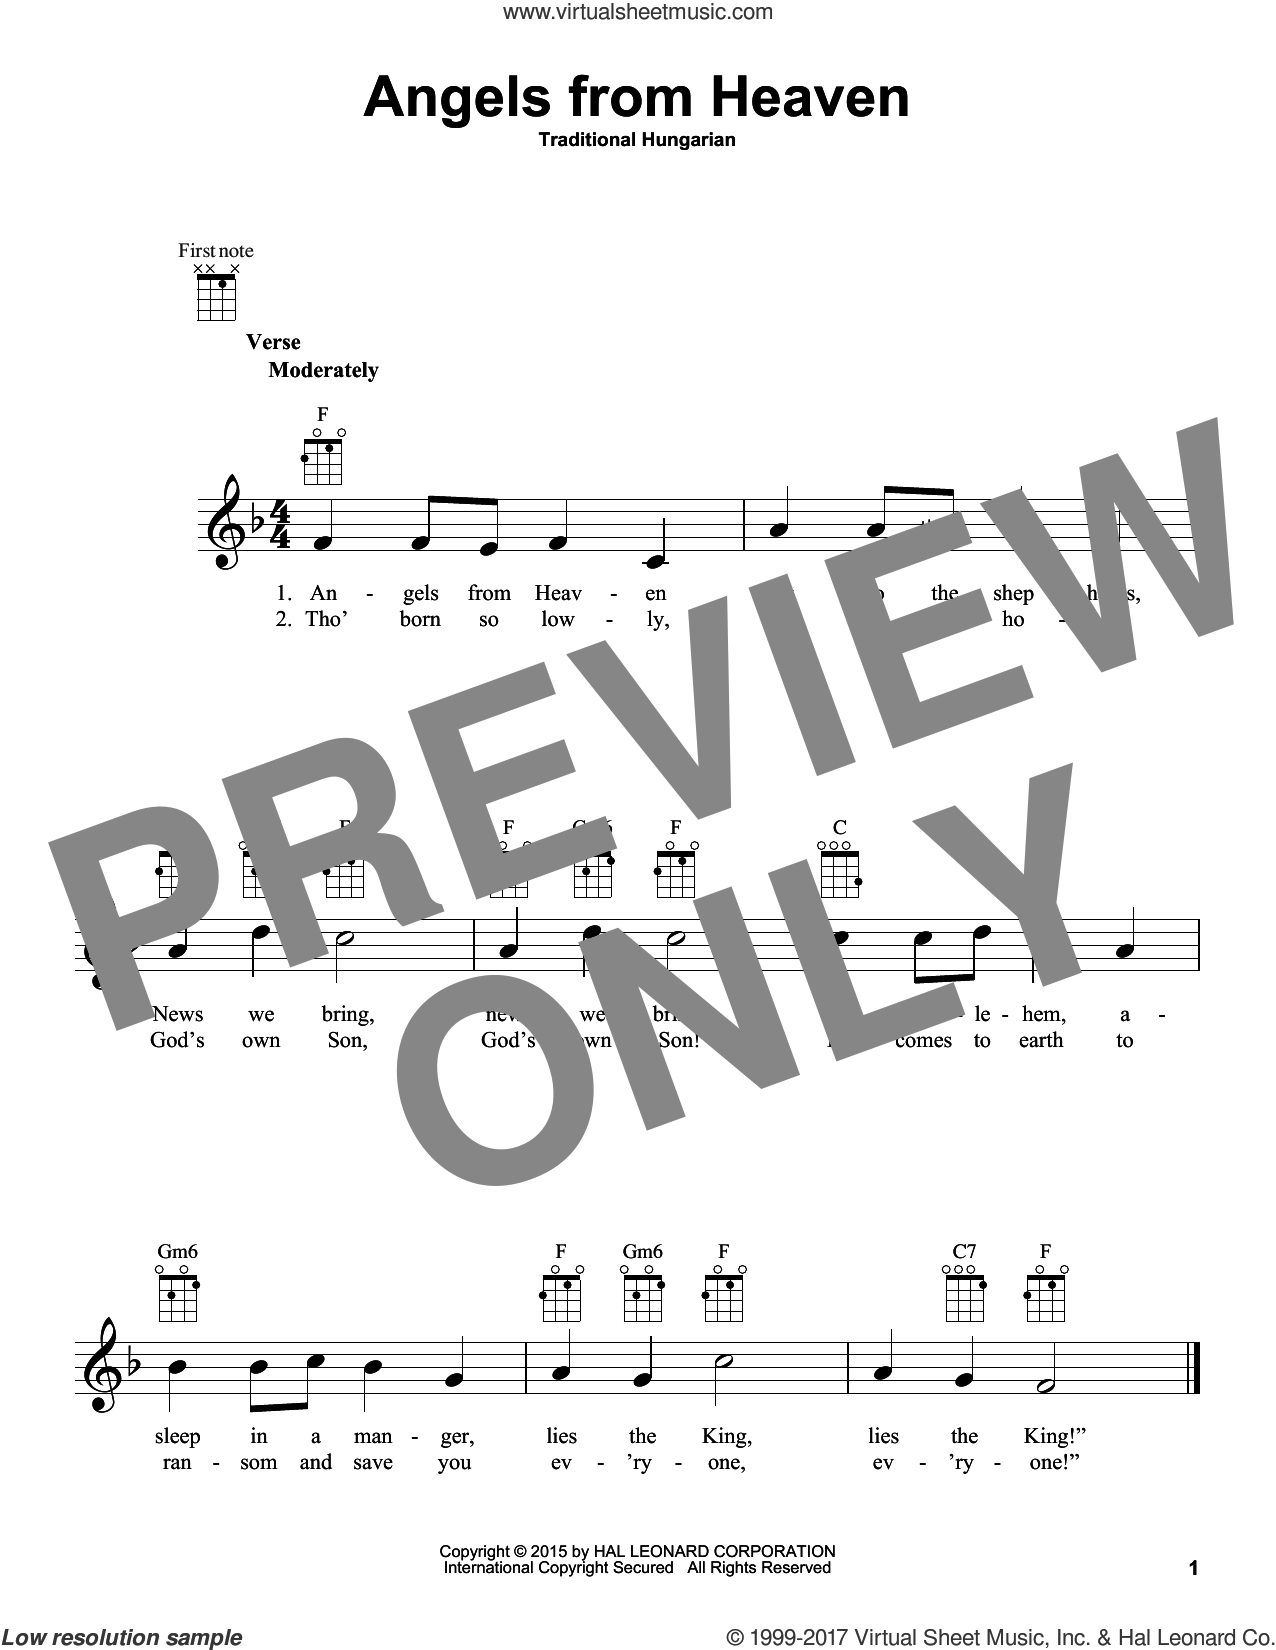 Angels From Heaven sheet music for ukulele by Traditional Hungarian. Score Image Preview.